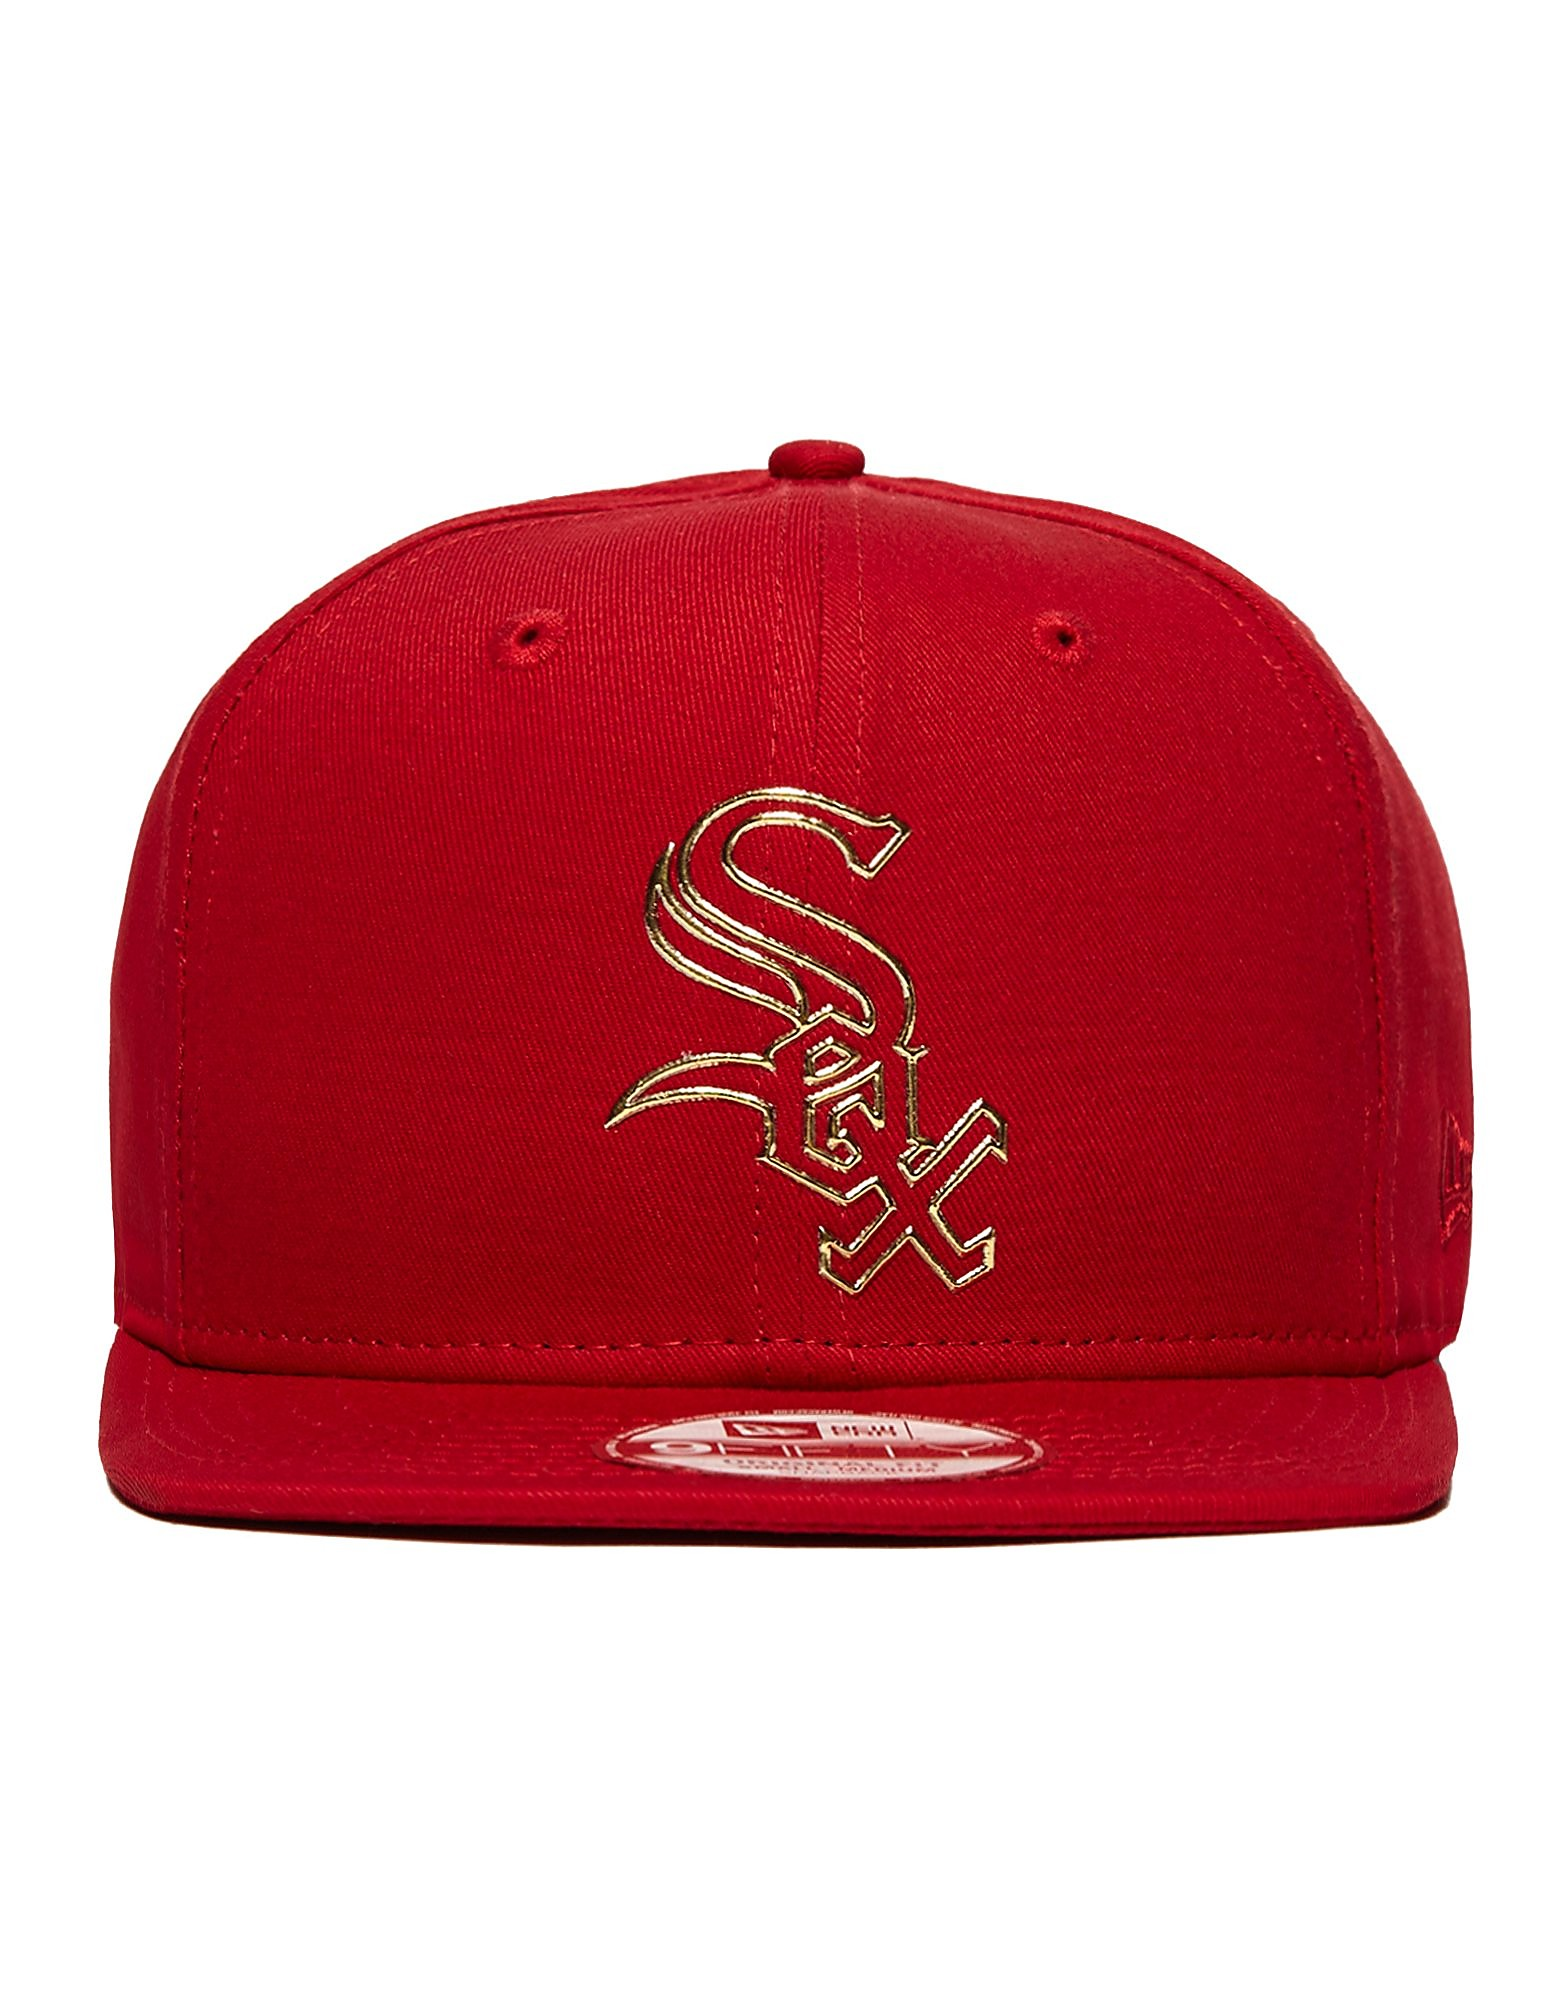 New Era 9FIFTY MLB Boston Red Sox Snapback Cap